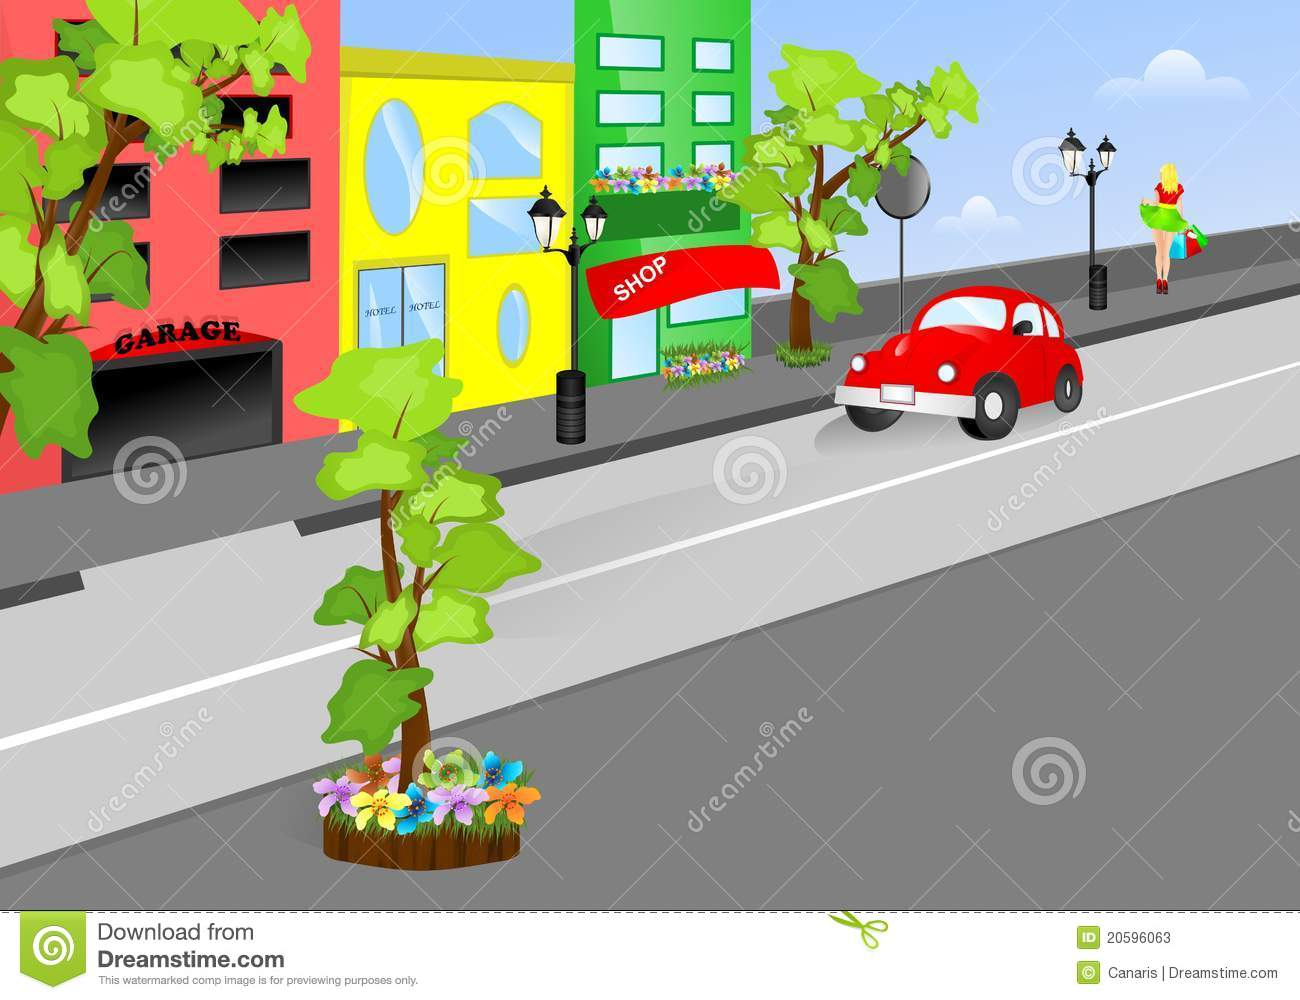 On the street clipart - Clipground